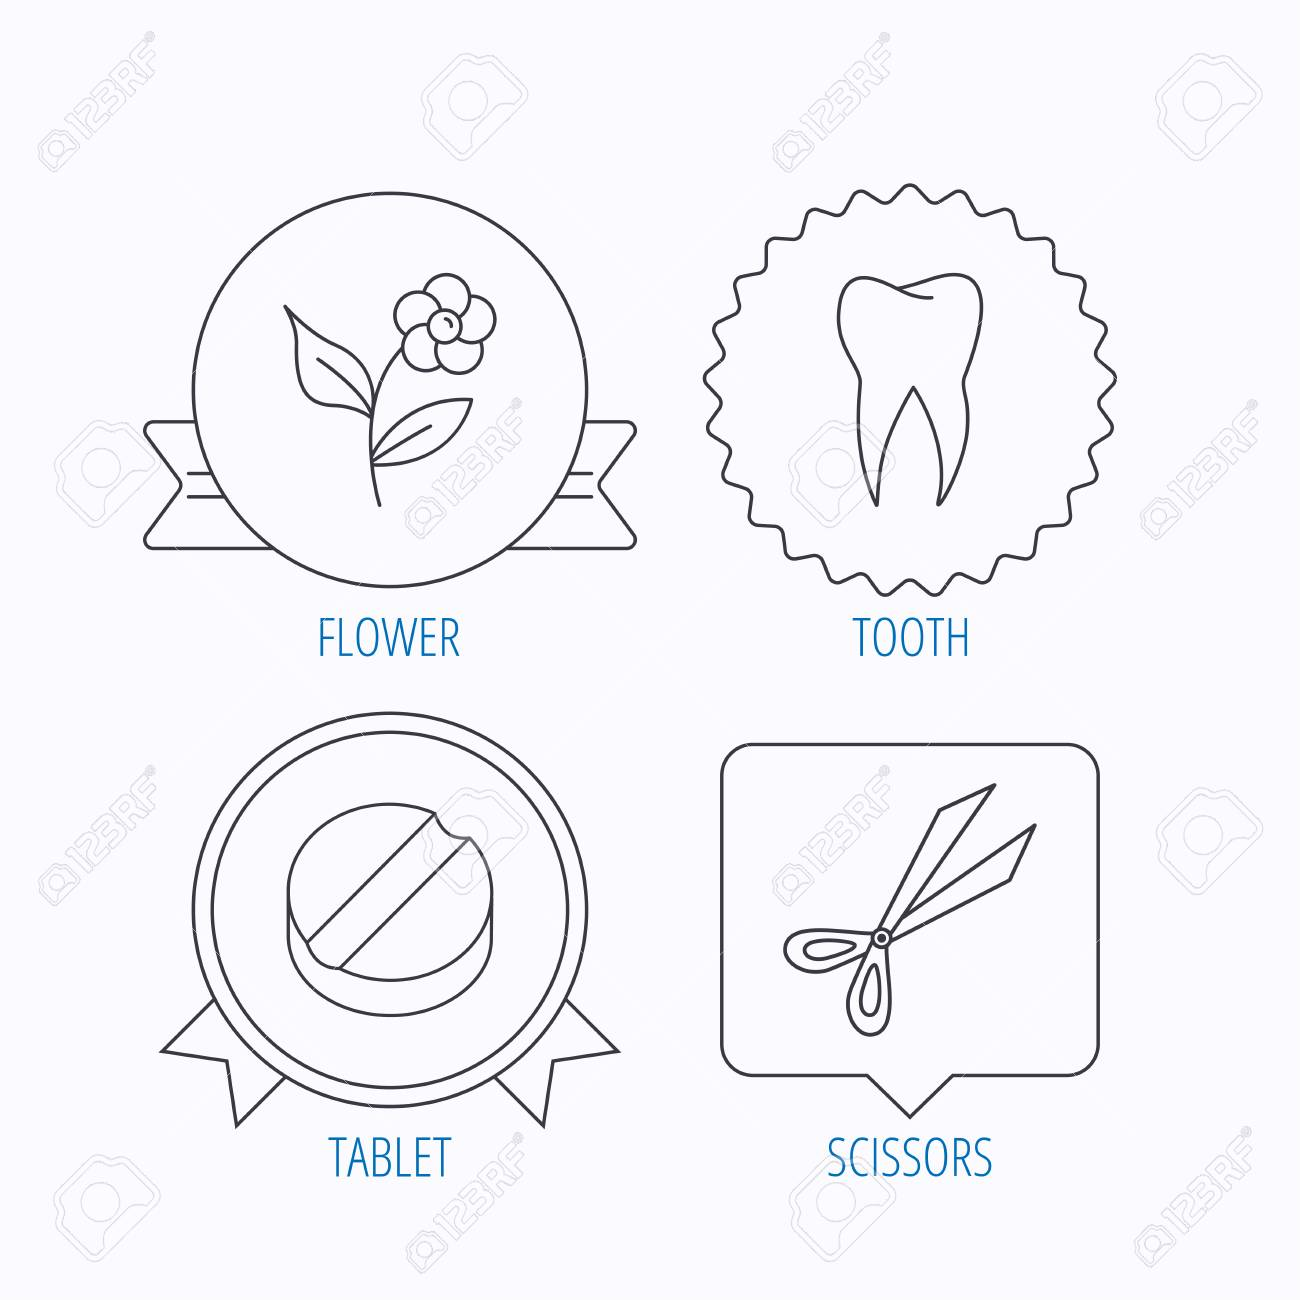 Tooth scissors and tablet icons flower linear sign award medal tooth scissors and tablet icons flower linear sign award medal star label ccuart Choice Image